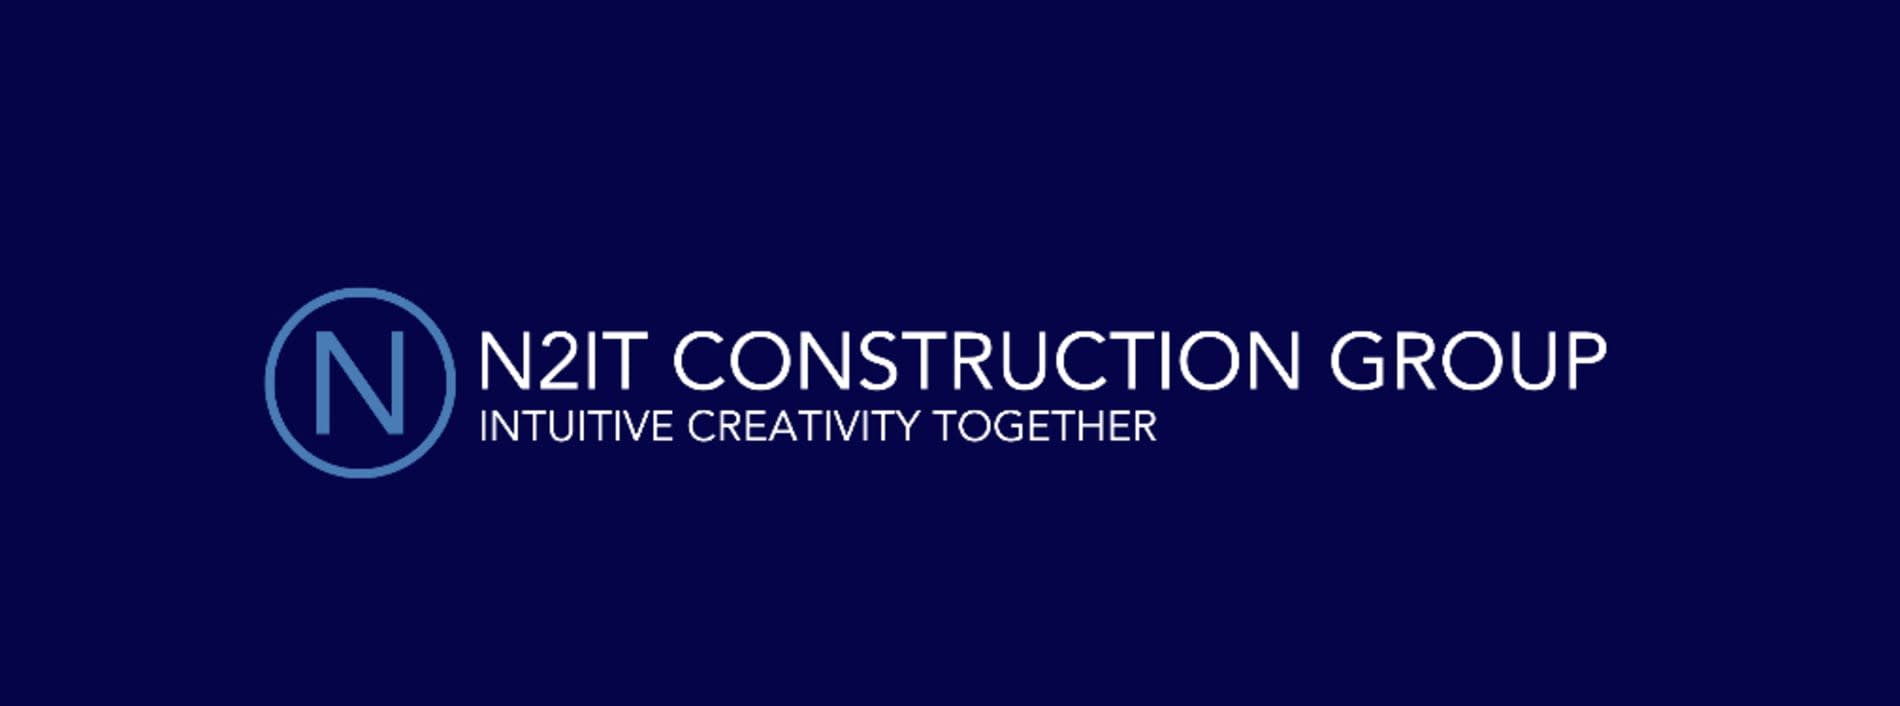 N2it Construction Group